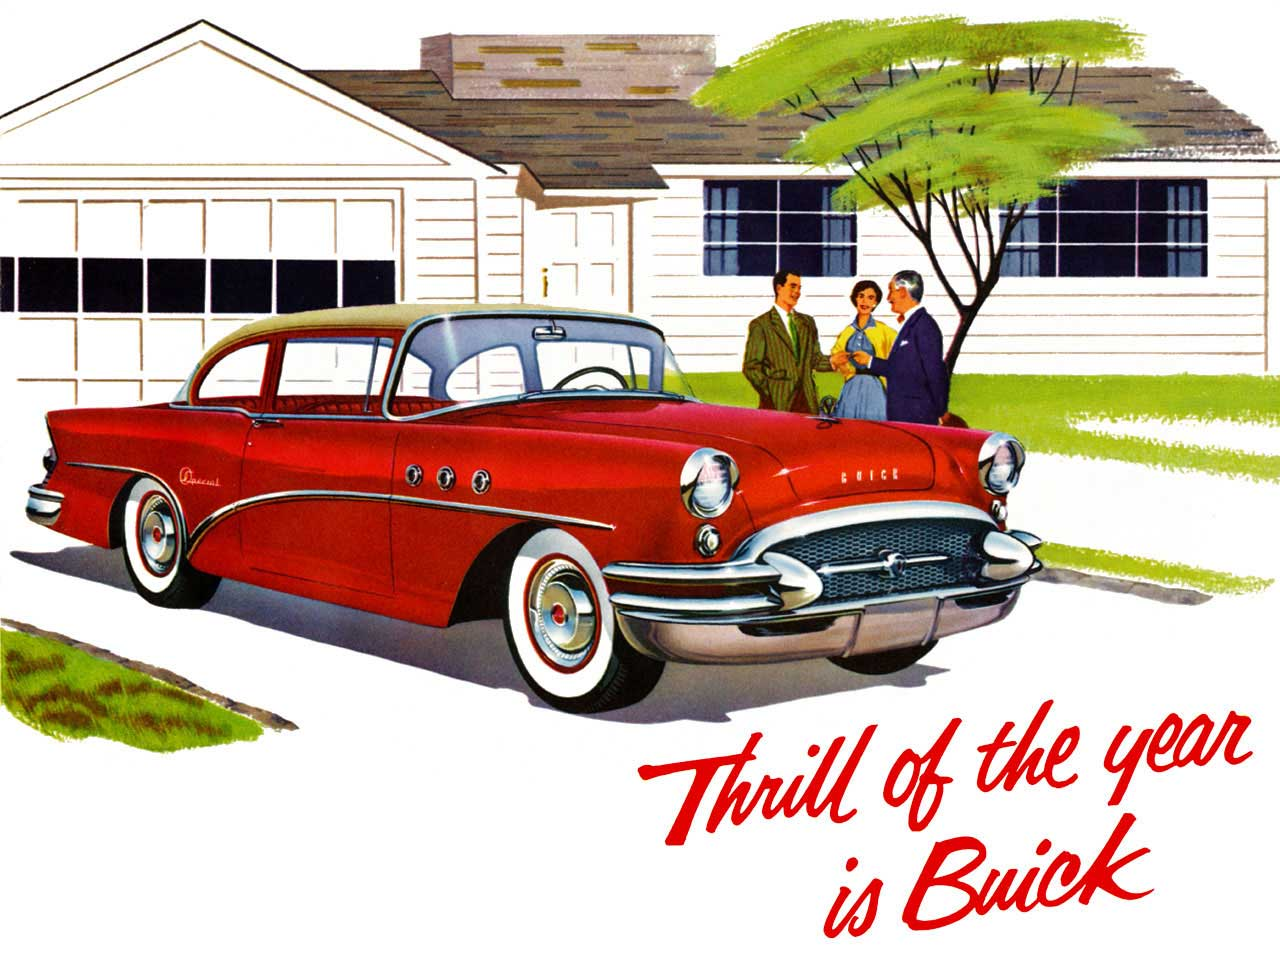 1955 Buick - Thrill of the Year is Buick